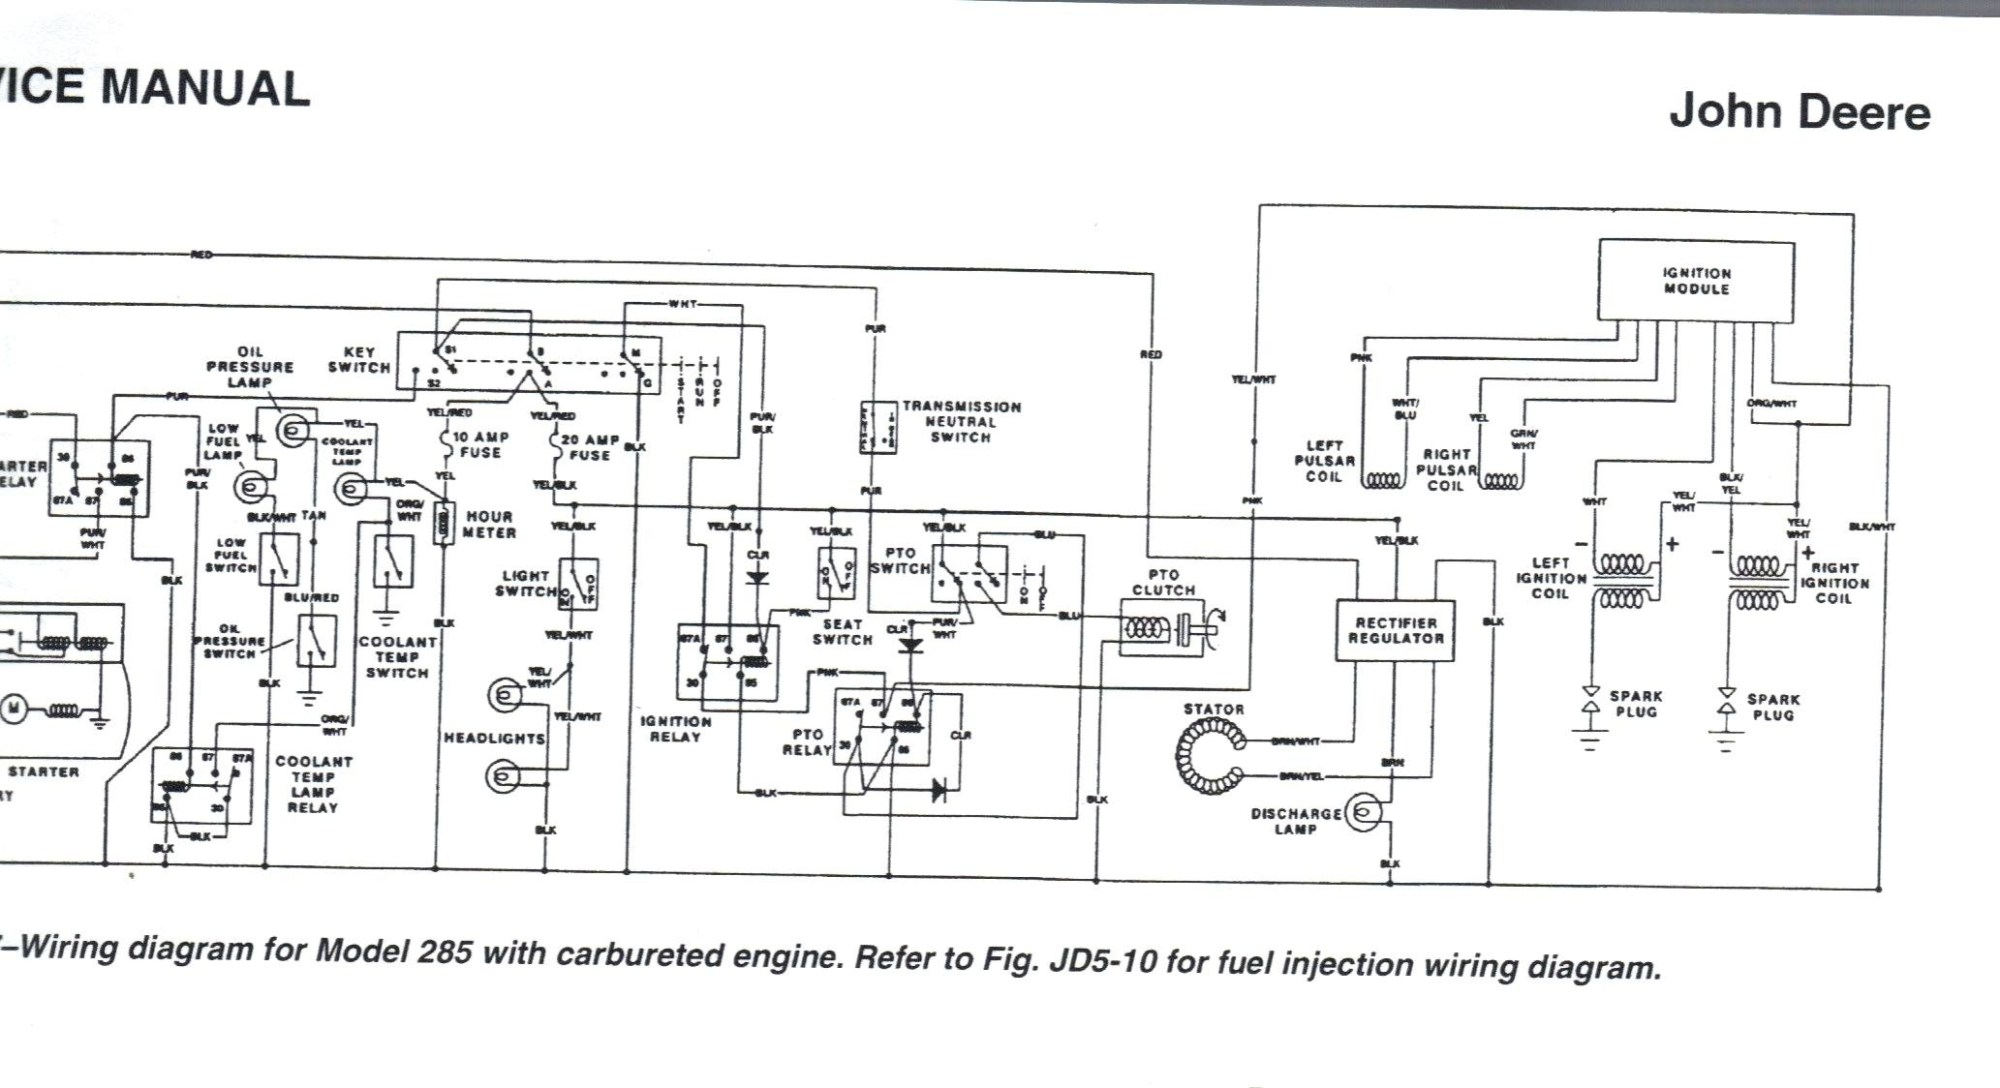 hight resolution of john deere 2440 wiring diagram wiring diagram source 2950 diesel wiring diagram john deere 2440 wiring diagram free download